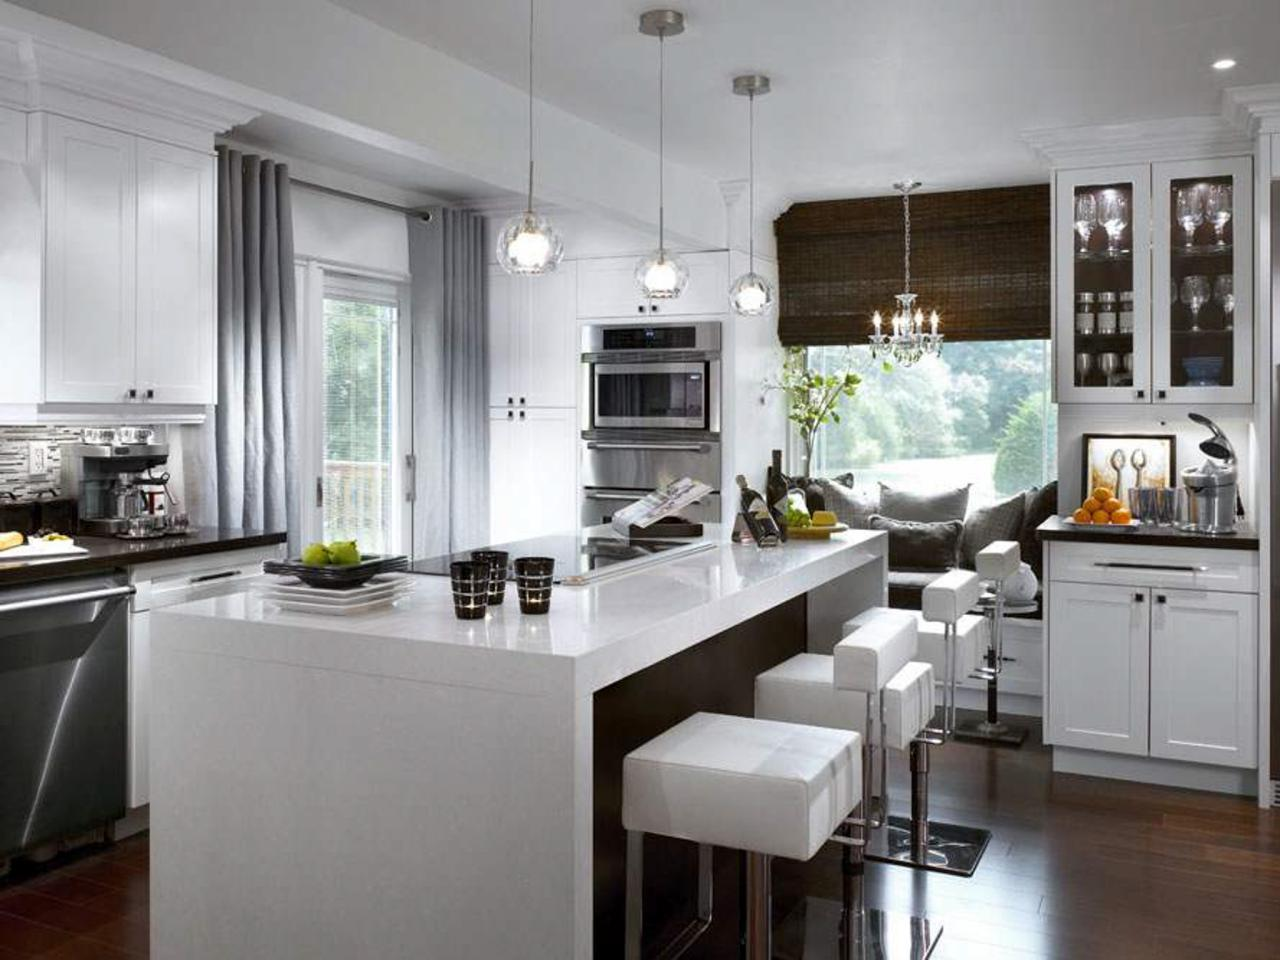 Cozy Kitchen with Extra Seating as the Extension of Window Sill with Vertical Blind